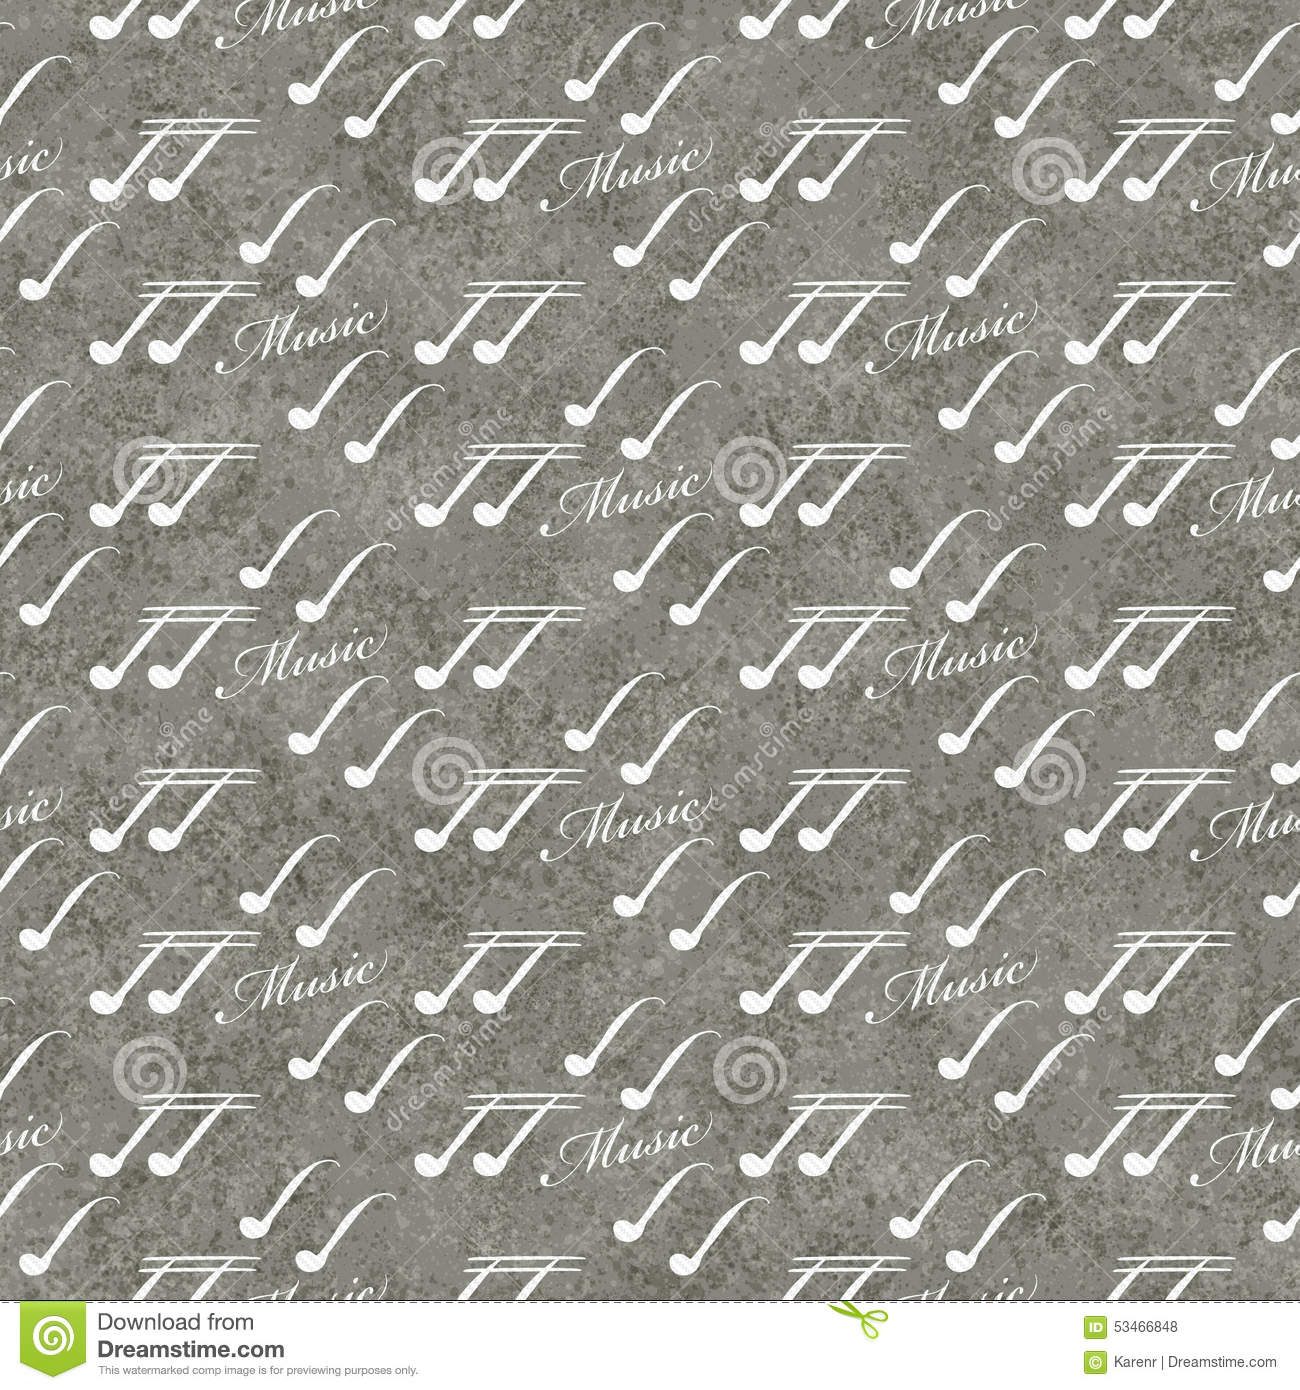 Gray And White Music Symbol Tile Pattern Repeat Background Stock